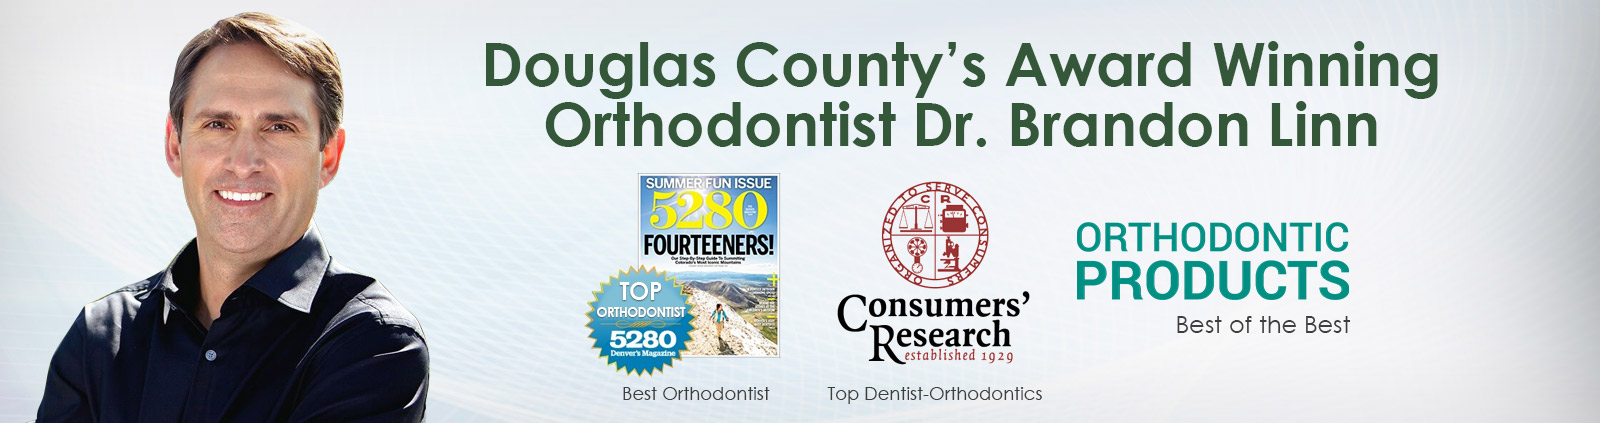 douglas county orthodontist dr brandon linn